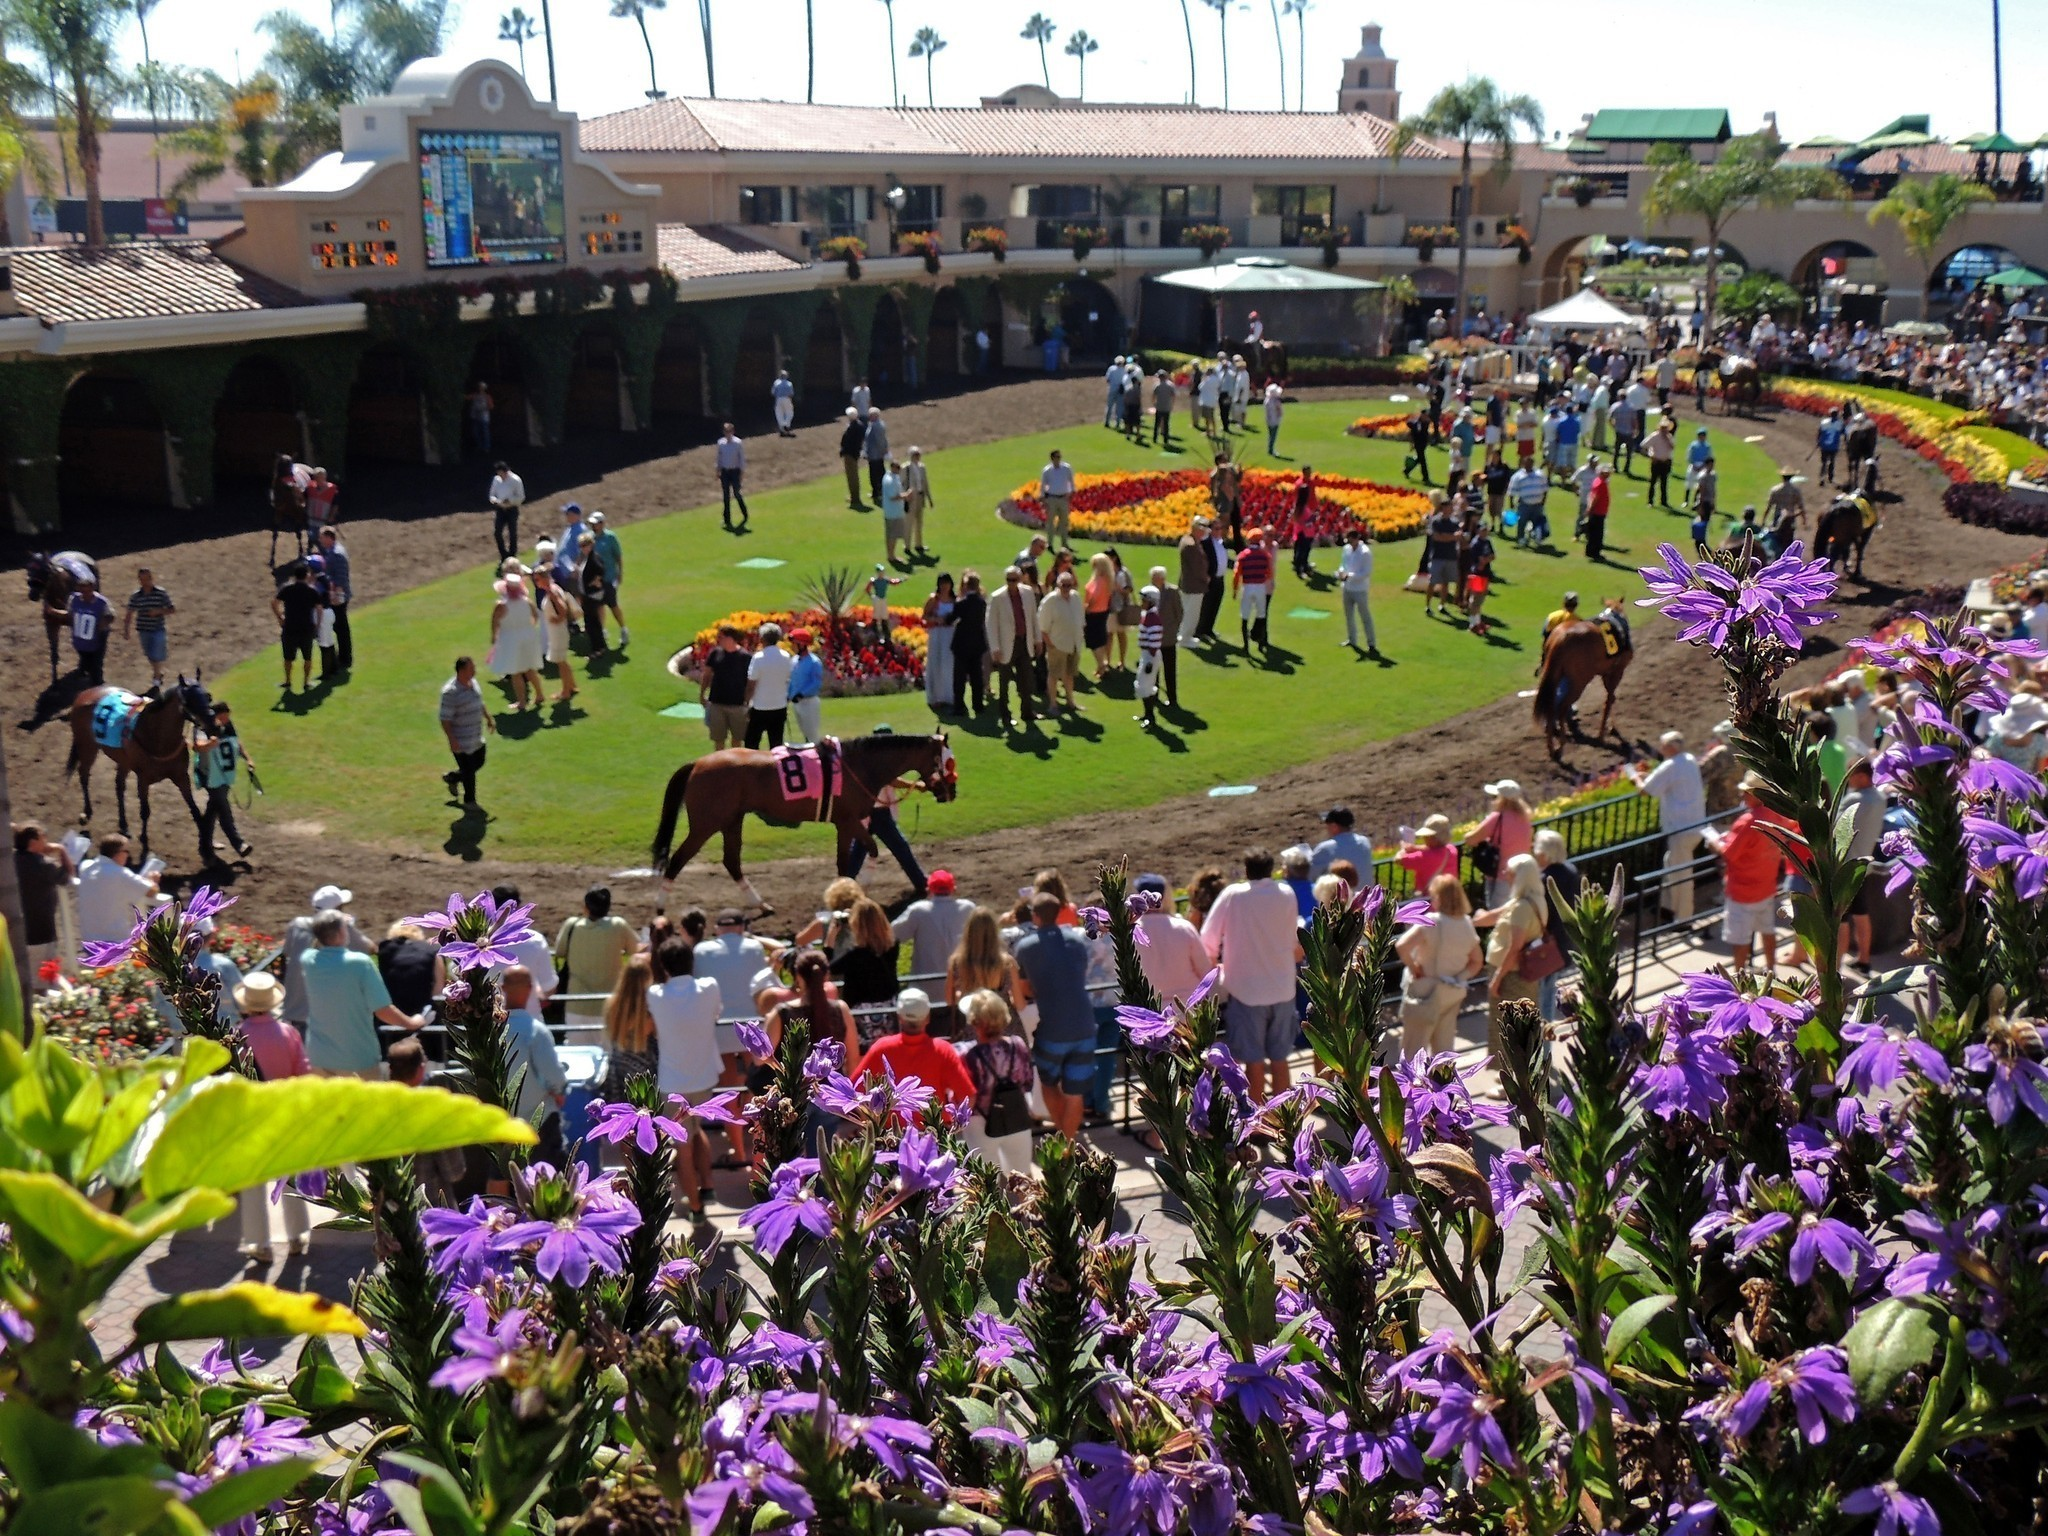 The dogs and horses are running in Del Mar, Calif.